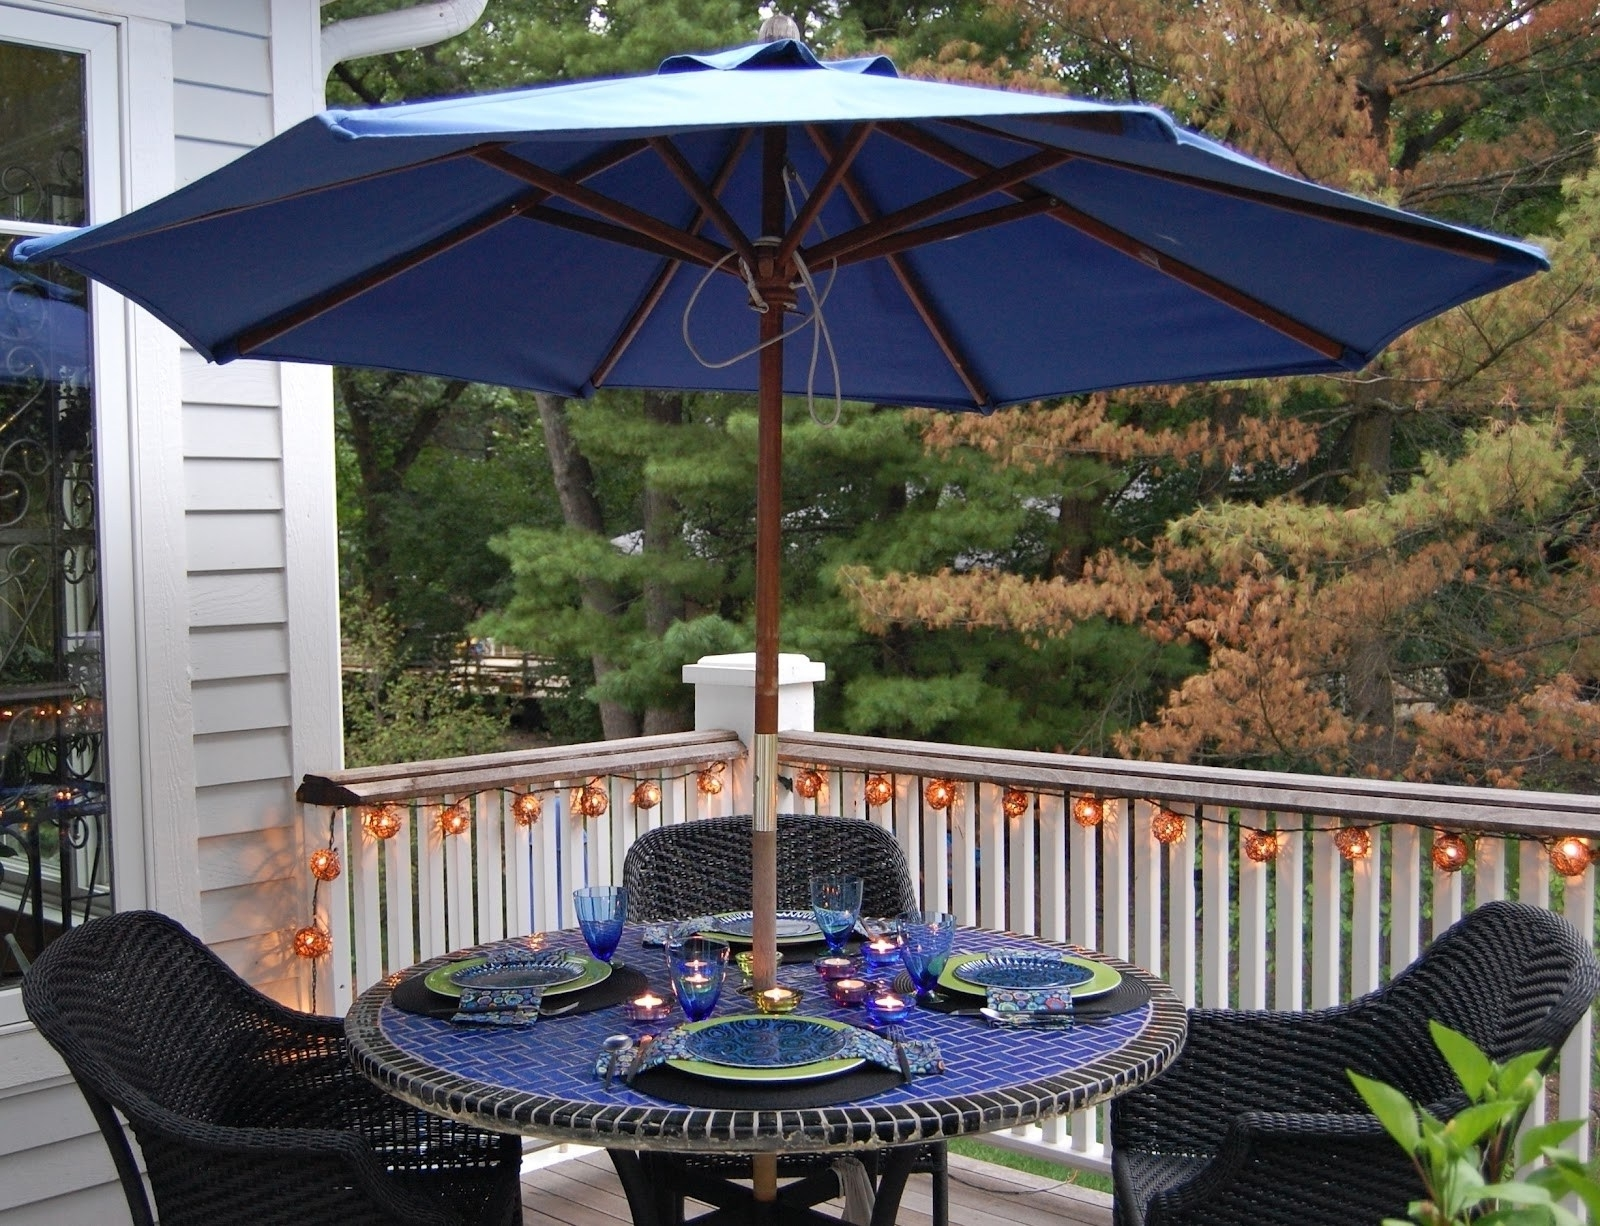 Patio: Amazing Small Patio Table With Umbrella Outdoor Furniture Throughout Favorite Patio Tables With Umbrellas (Gallery 17 of 20)